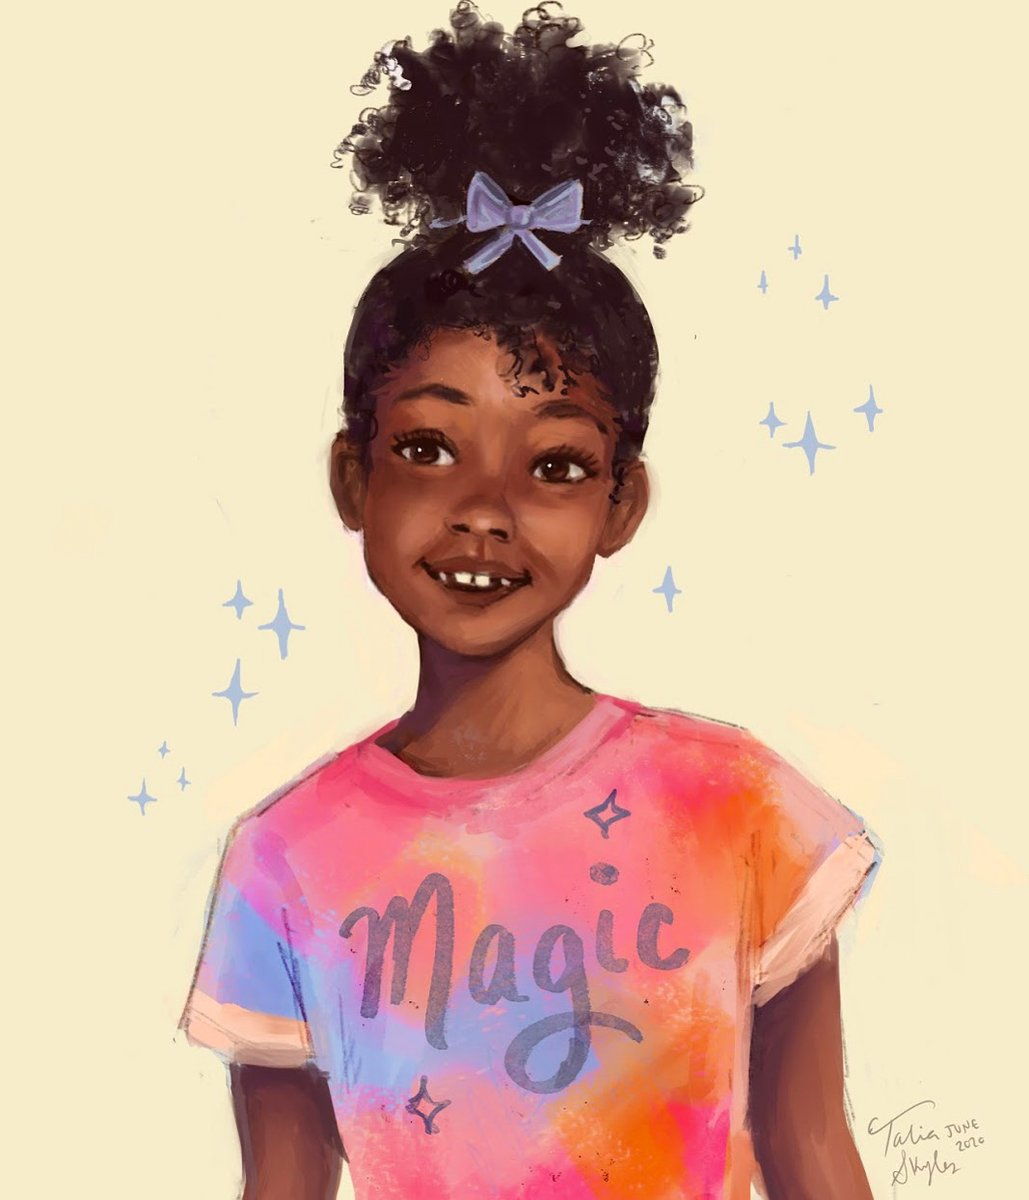 Here's a recent commission I made for a mom whose daughter was being teased at school for her curly hair texture. I hope this piece shows her how magical she really is ❤️ #blackgirlmagic https://t.co/7CeFbZYZW2